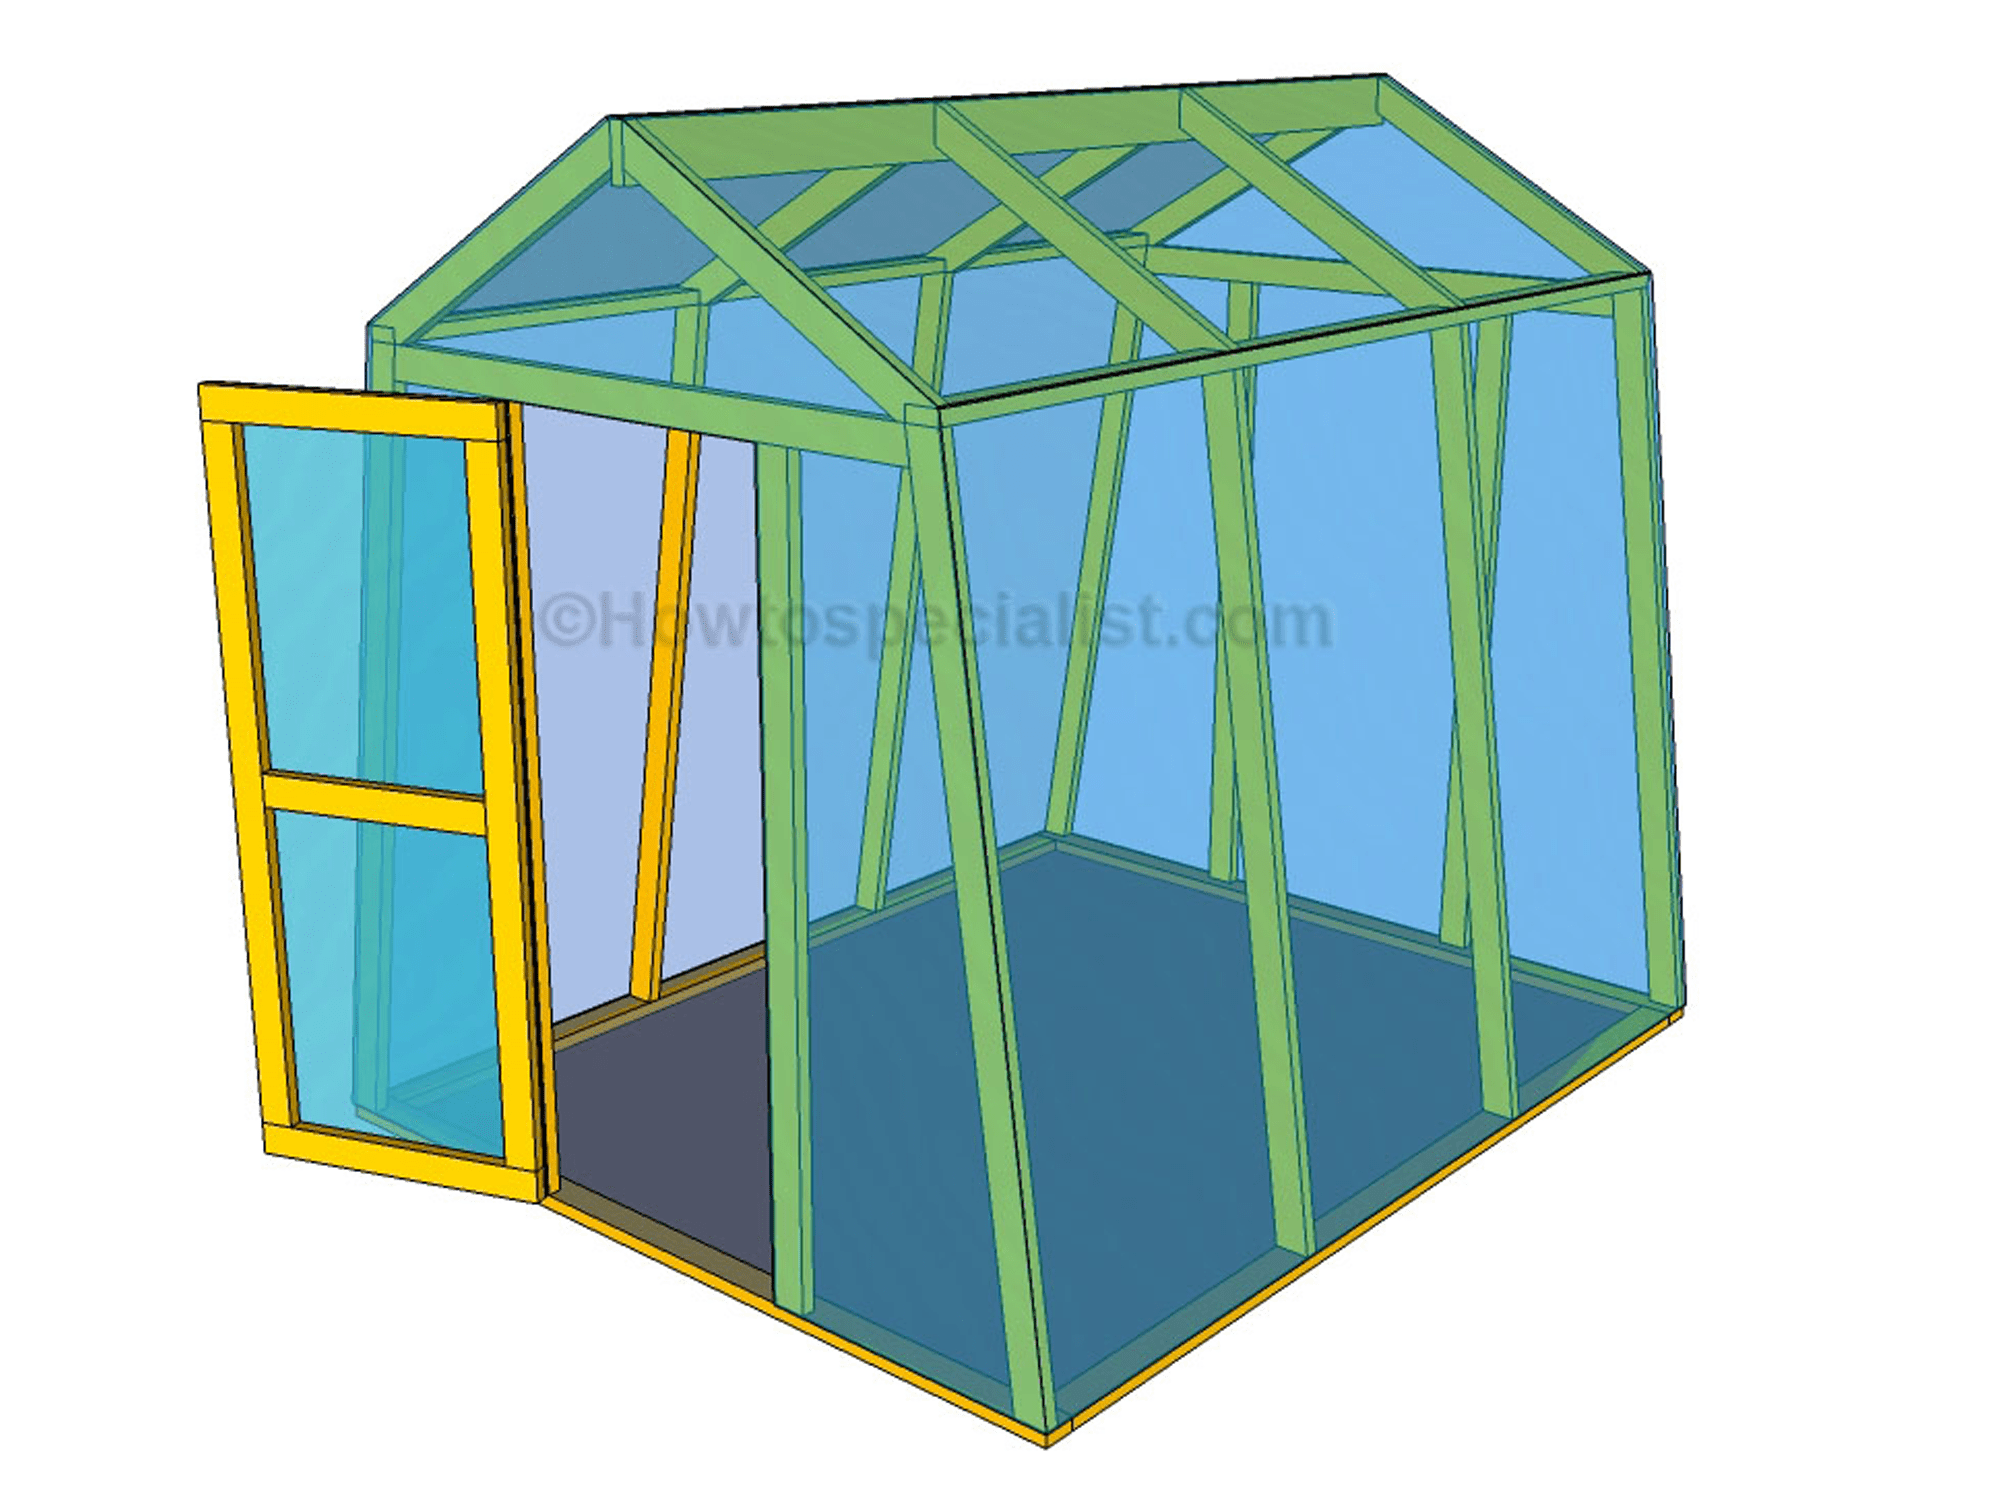 13 Free DIY Greenhouse Plans Commercial Greenhouse Plans Designs on greenhouse conservatory designs, garage plans designs, shed plans designs, gardening plans designs, greenhouse structures and designs, eco house plans designs, hoop house greenhouse designs, home plans designs, quonset greenhouse structure designs, best greenhouse designs, unique greenhouse designs,